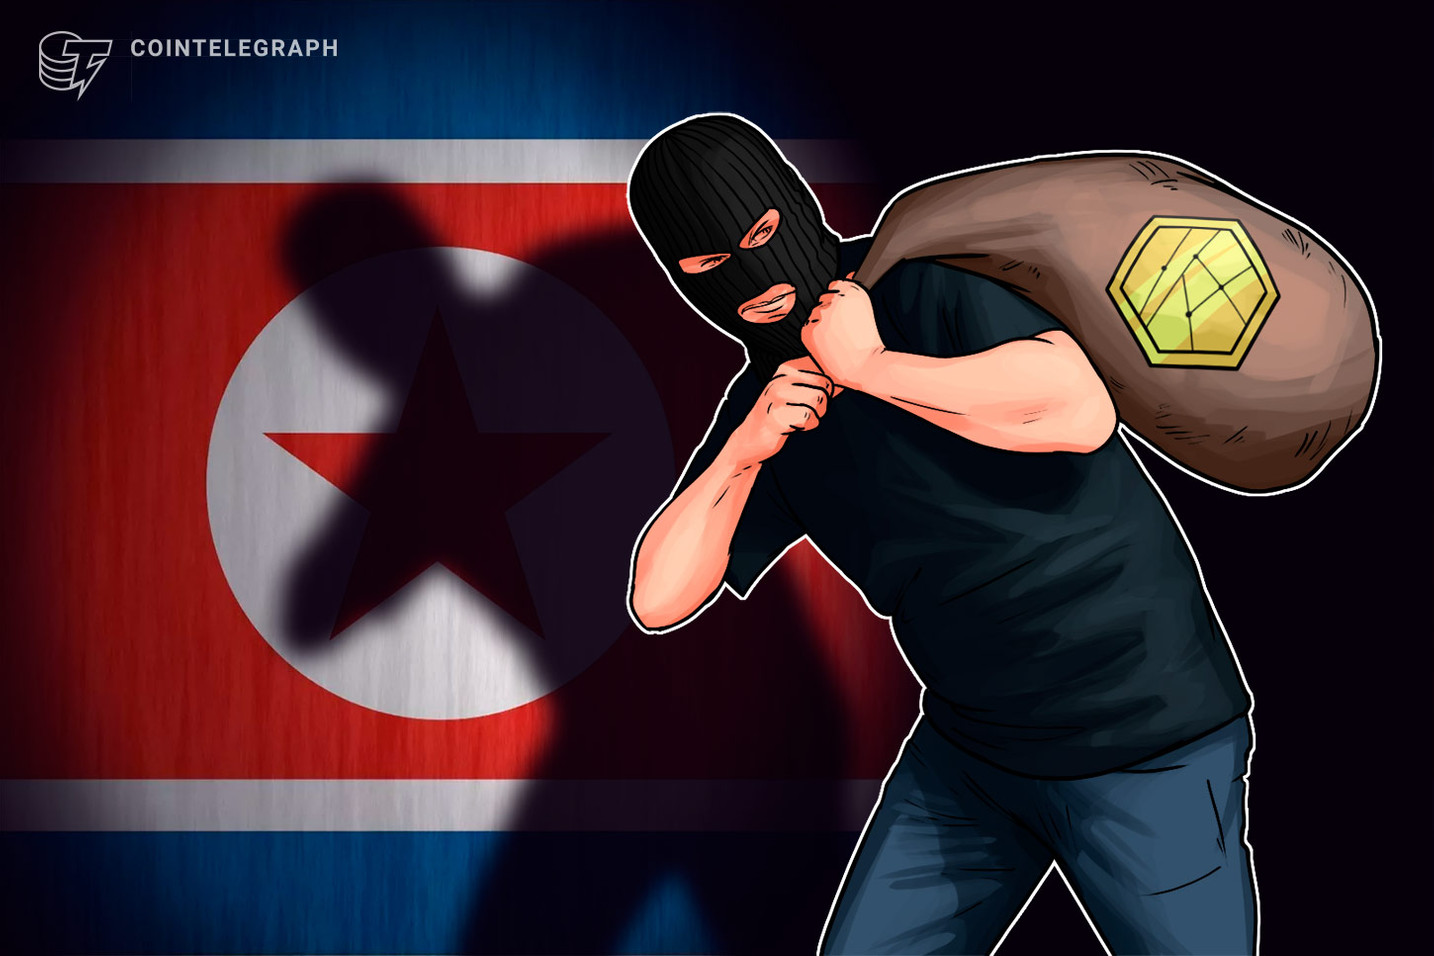 UN Claims Hong Kong Blockchain Firm Is North Korean Laundering Sham